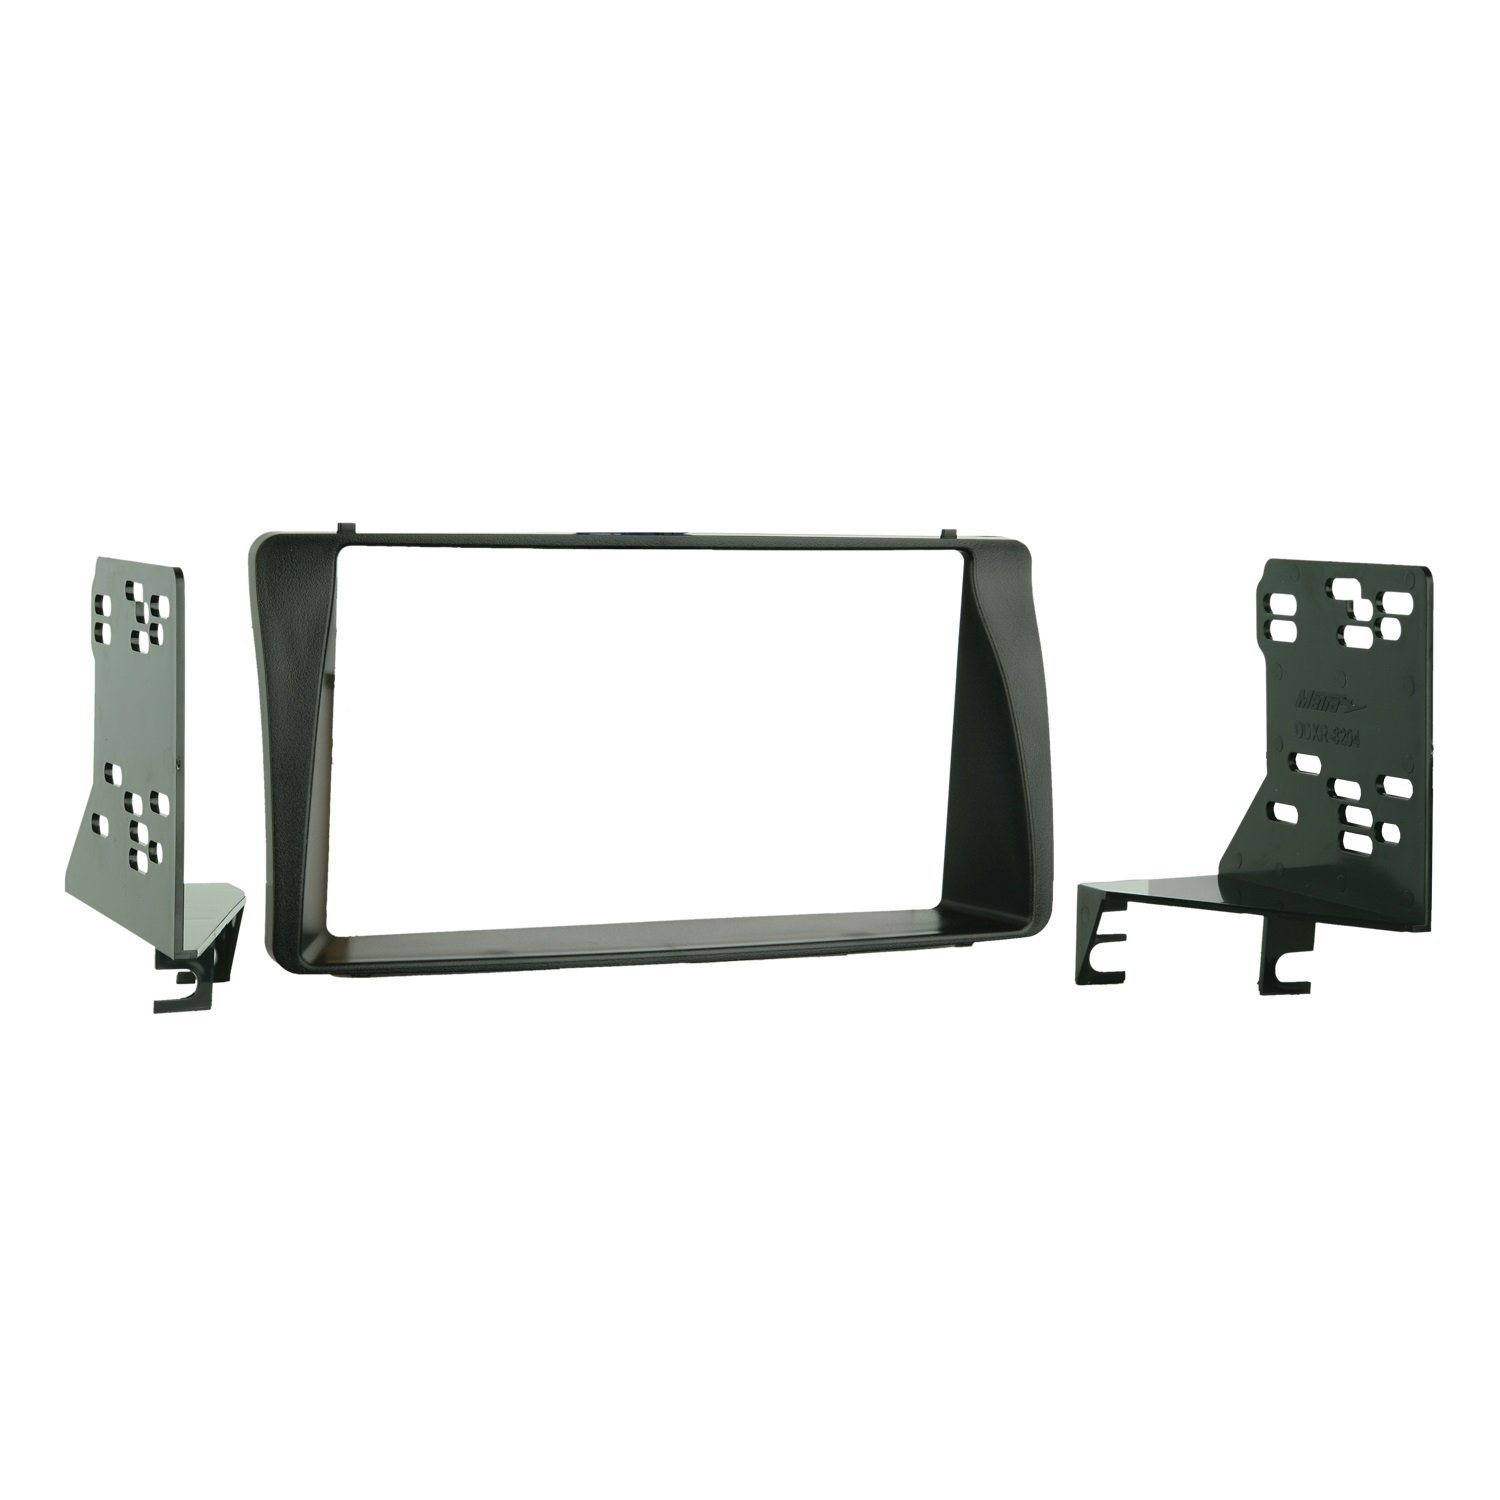 Metra 95-8204 Double DIN Installation Kit for 2003-up Toyota Corolla Vehicles (Black) Metra Electronics Corporation